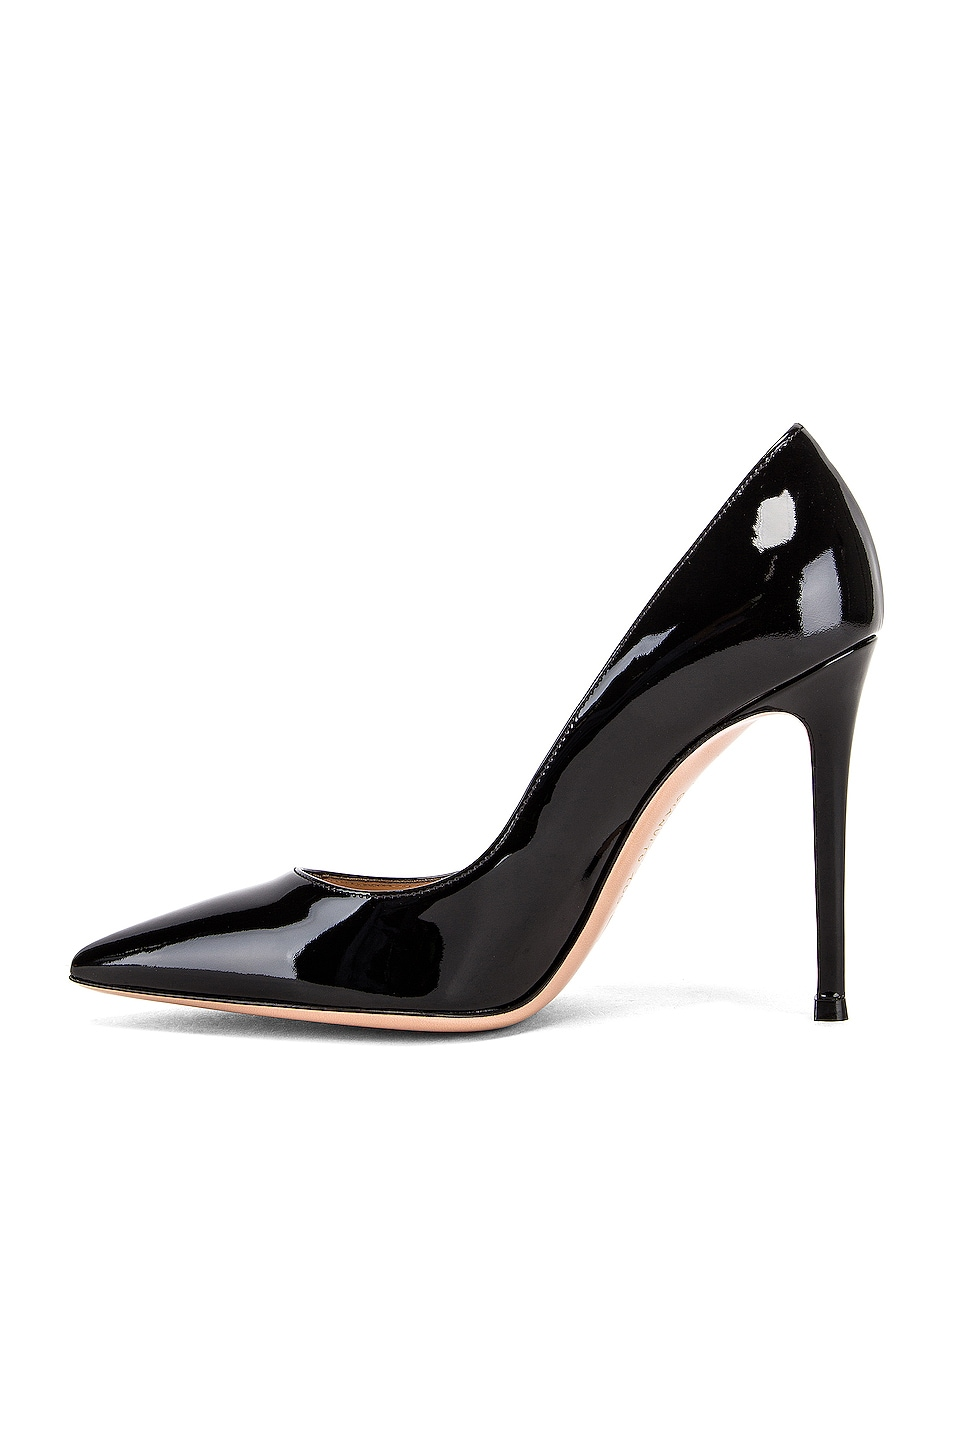 Image 5 of Gianvito Rossi Patent Leather Gianvito Pumps in Black